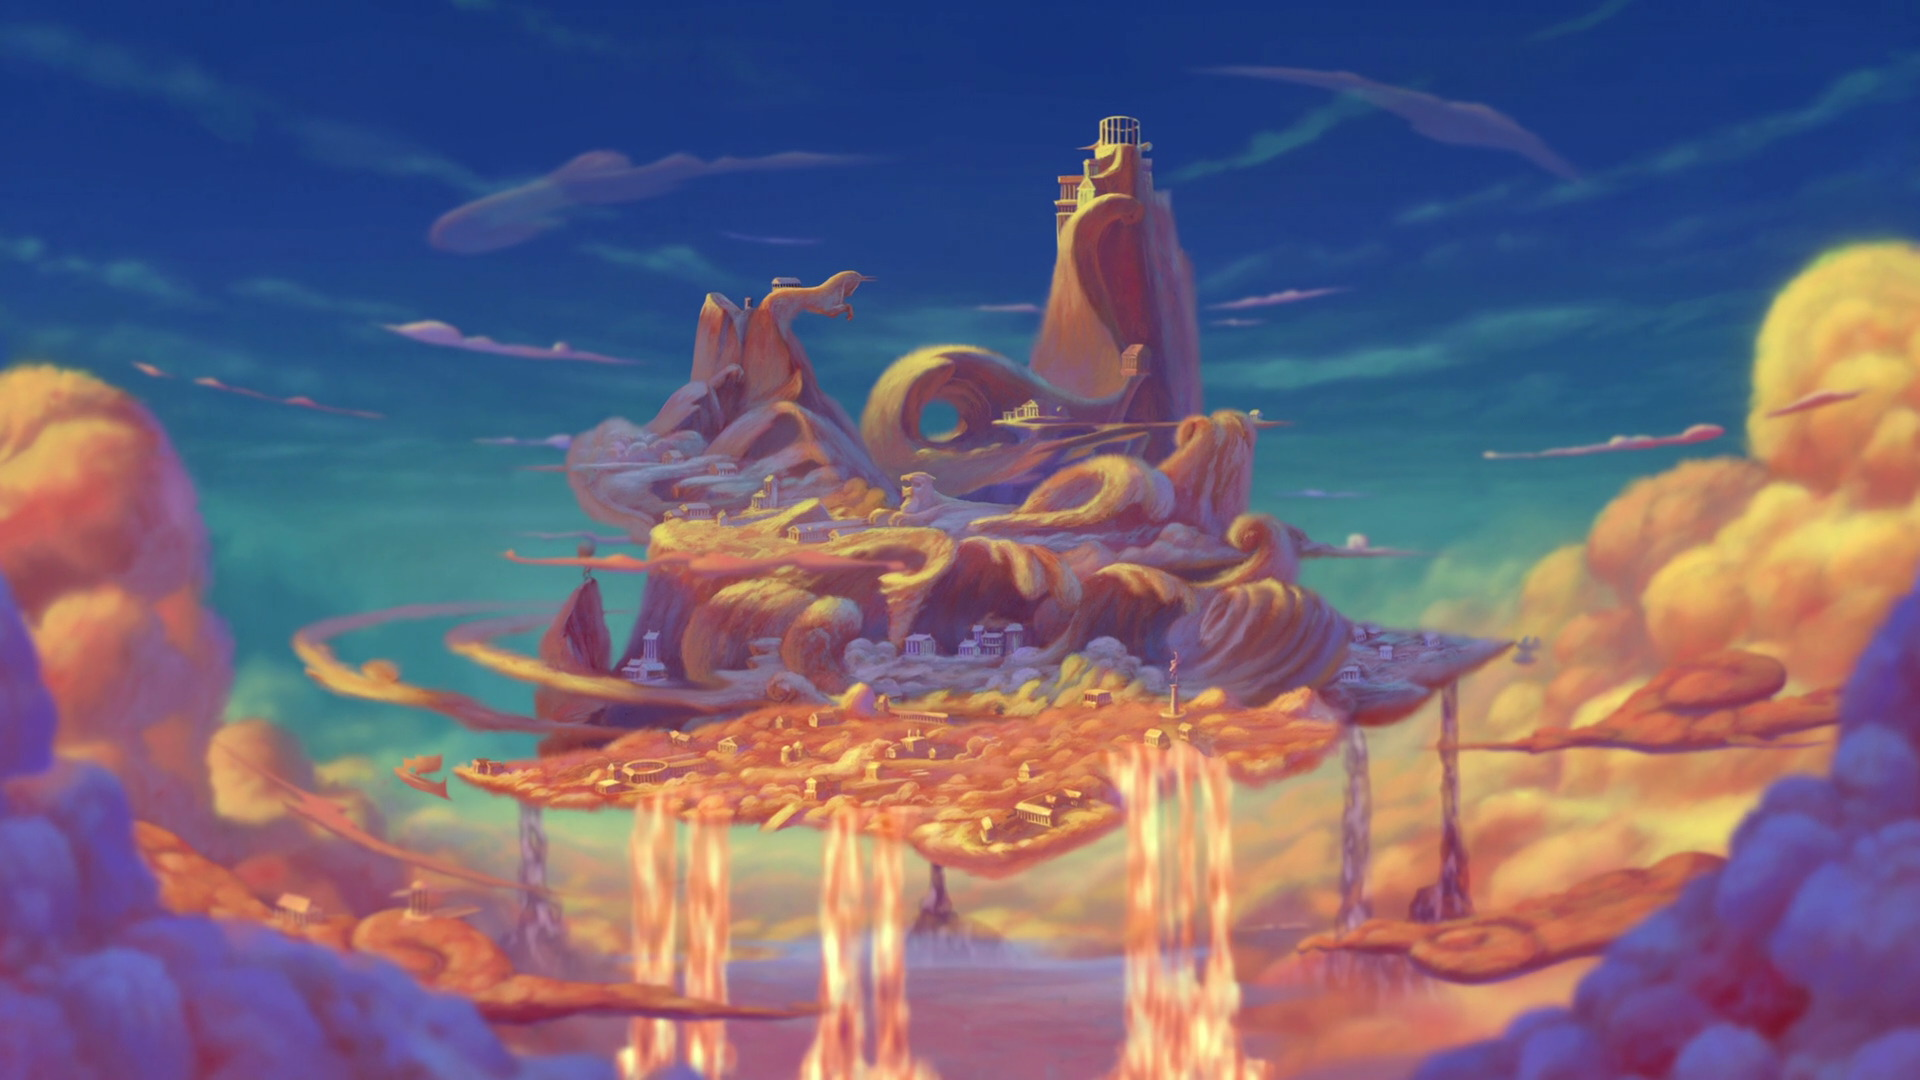 Palace of the gods Winx club and freinds adventures Wiki 1920x1080